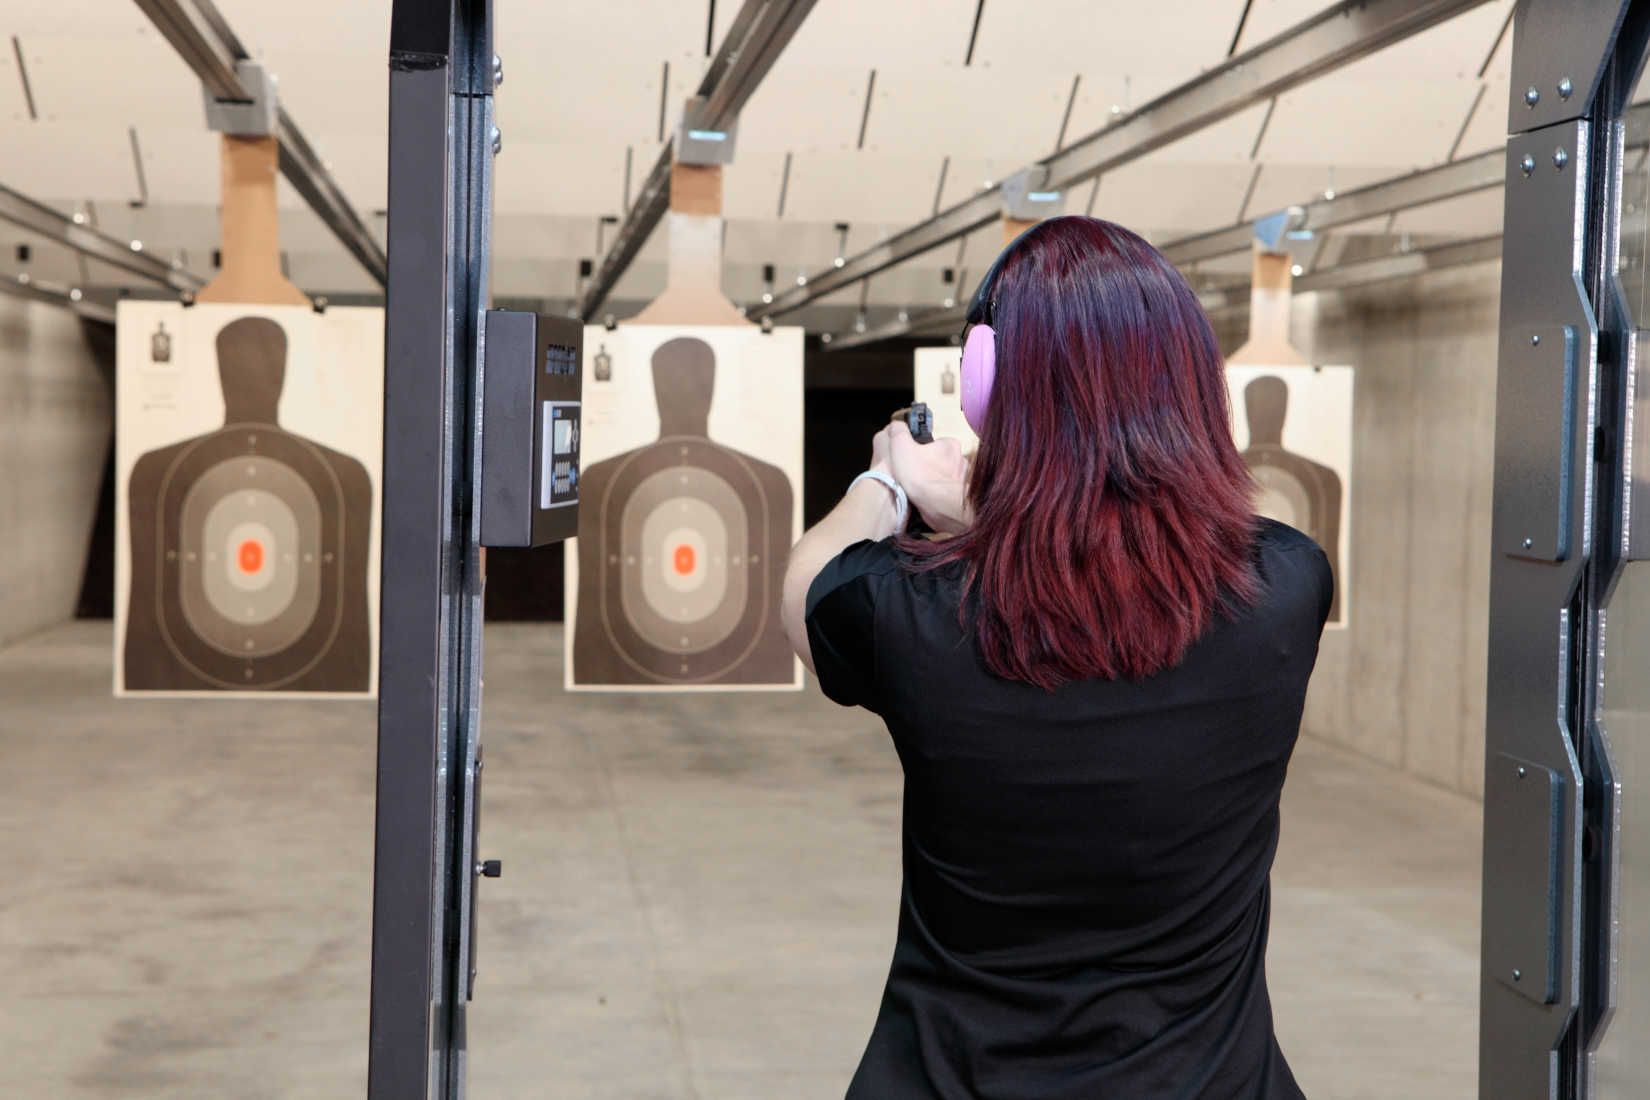 Women and Minorities Are Turning More Pro-Gun, Which Could be Bad News for the Gun Control Movement